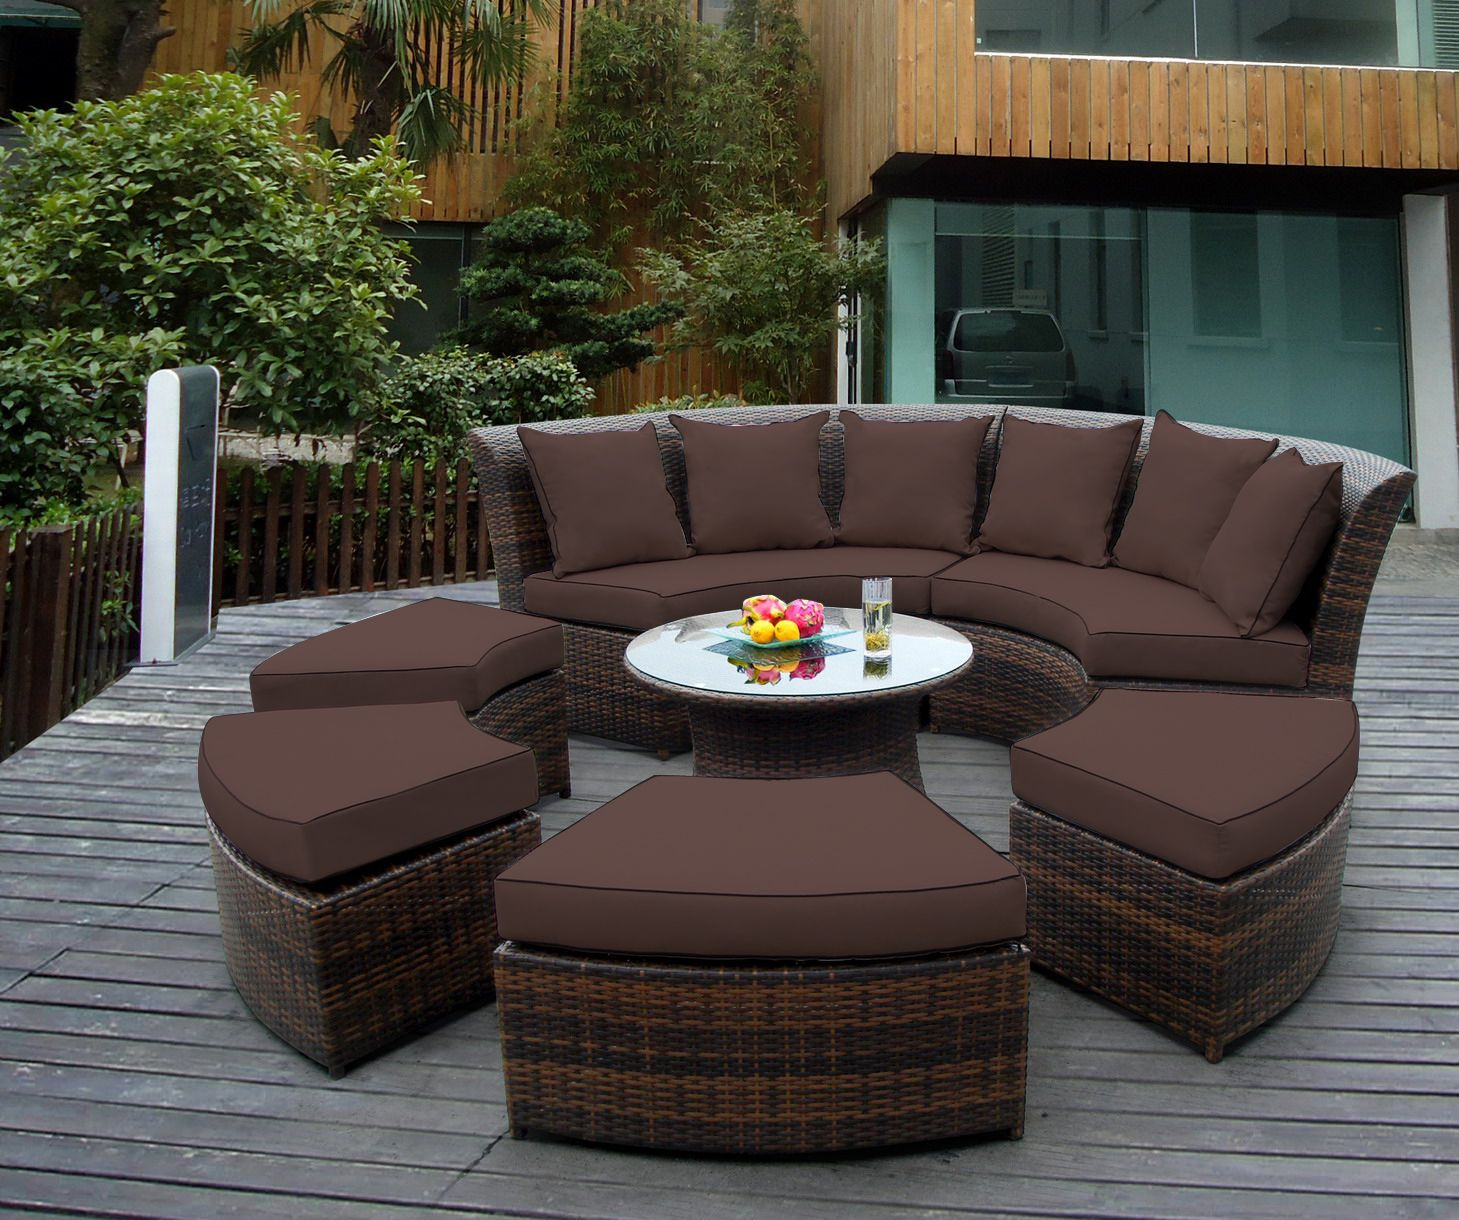 Ohana Outdoor Patio Wicker Furniture 7pc Couch Set   Brown